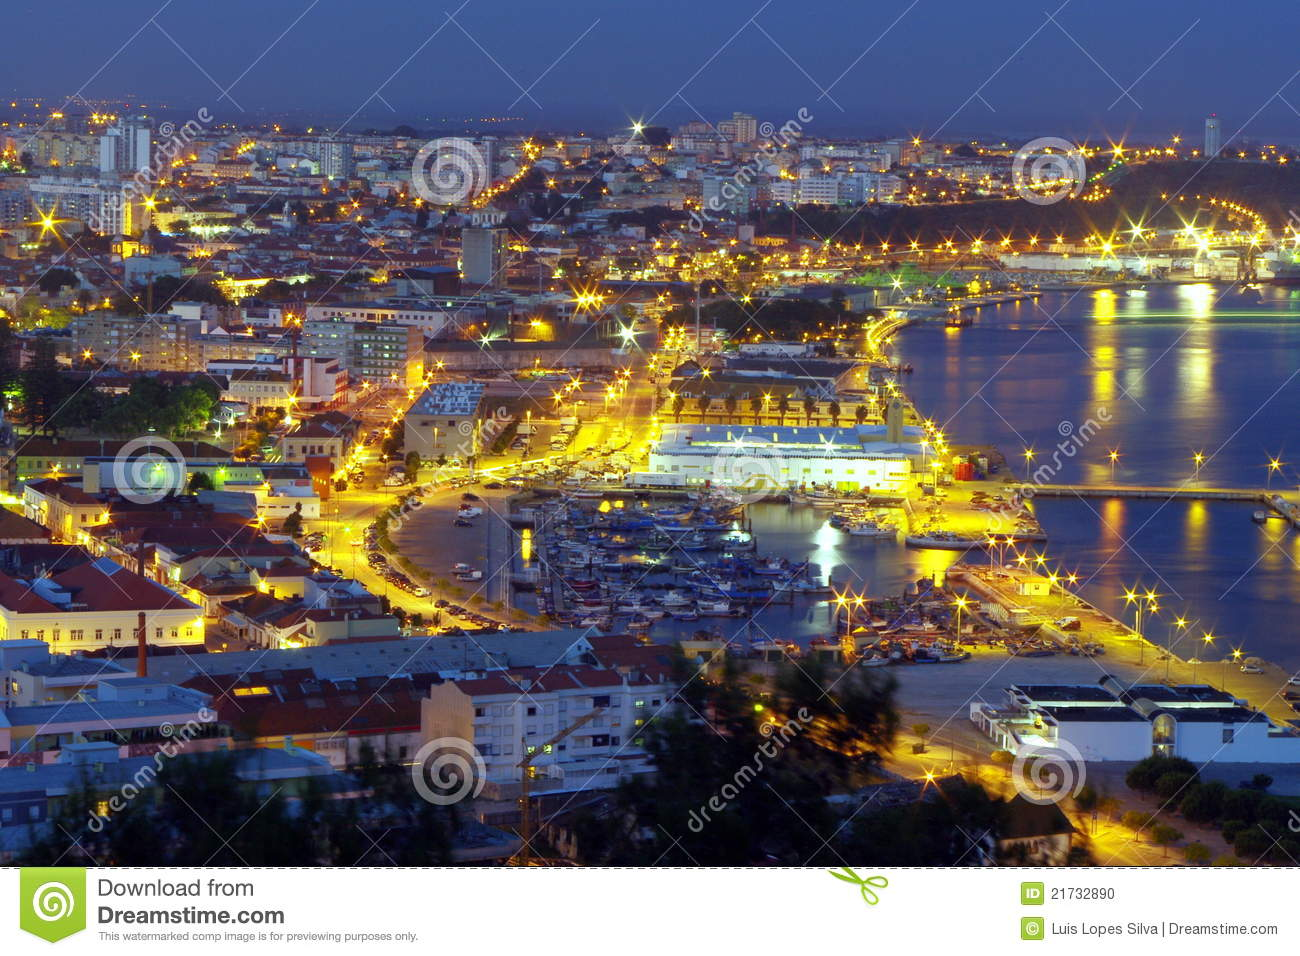 City lights and harbour at night, Setubal, Portugal.